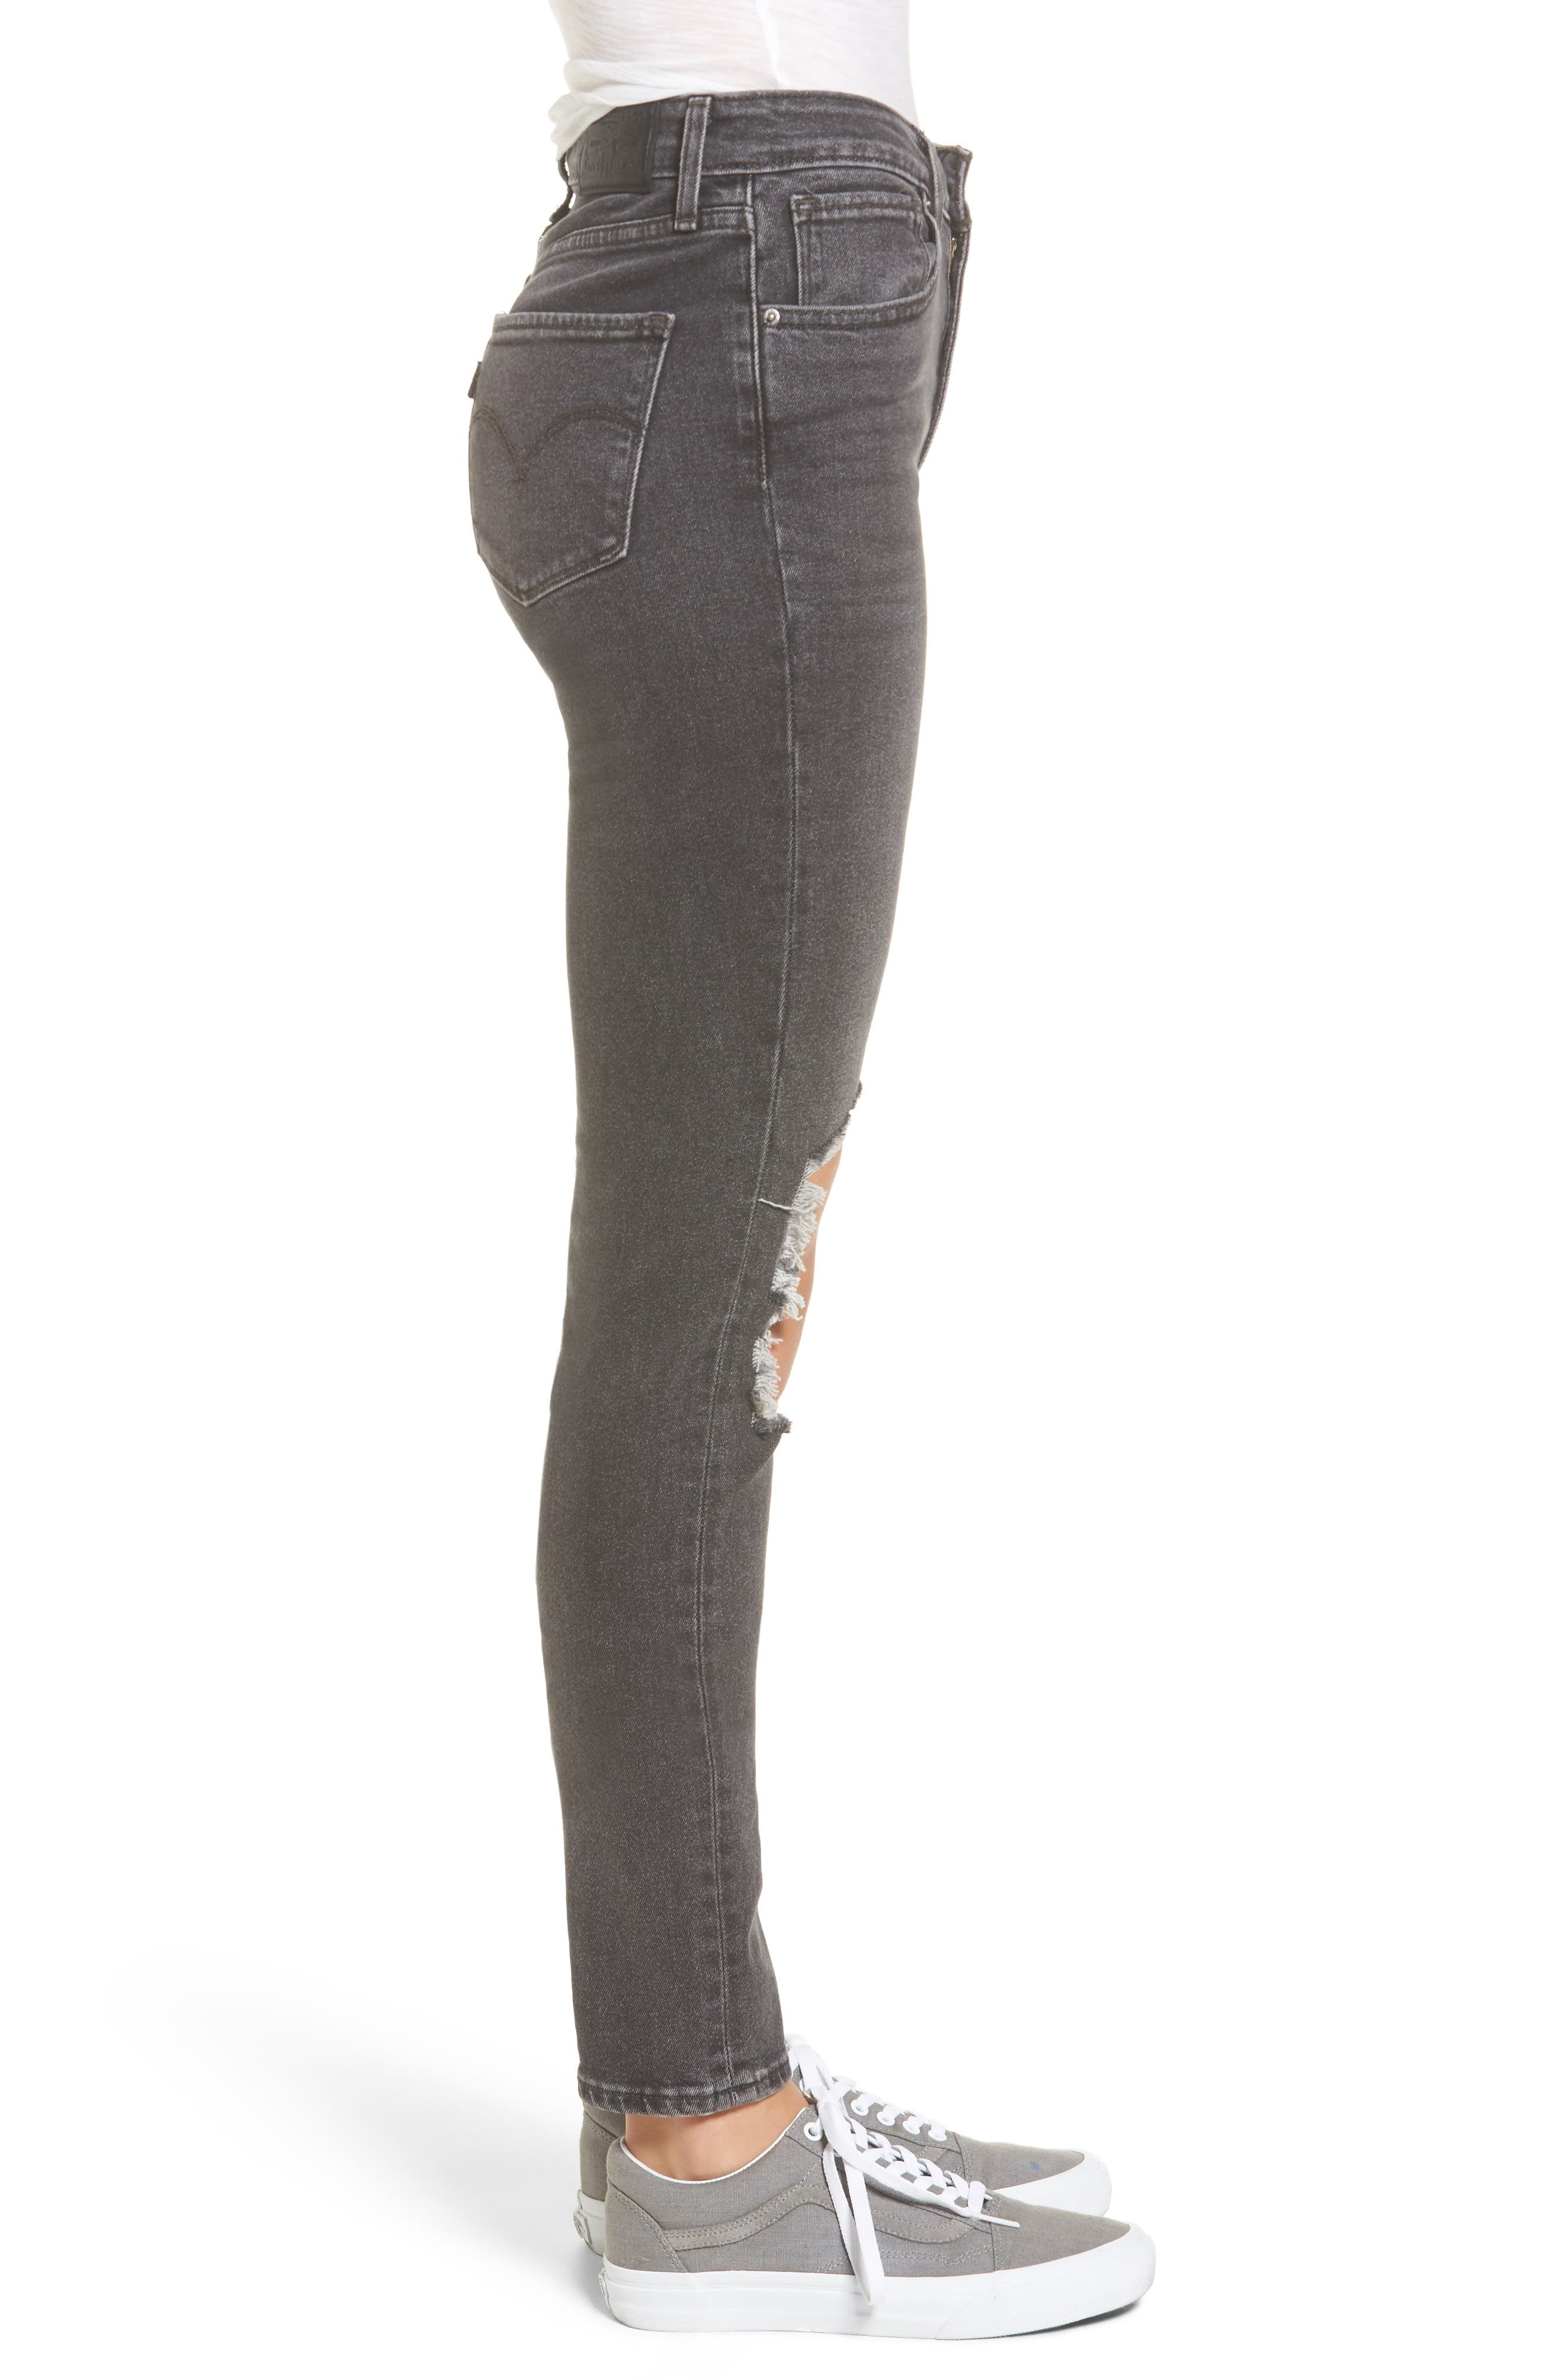 Alternate Image 3  - Levi's® 721 Ripped High Waist Skinny Jeans (Rugged Black)